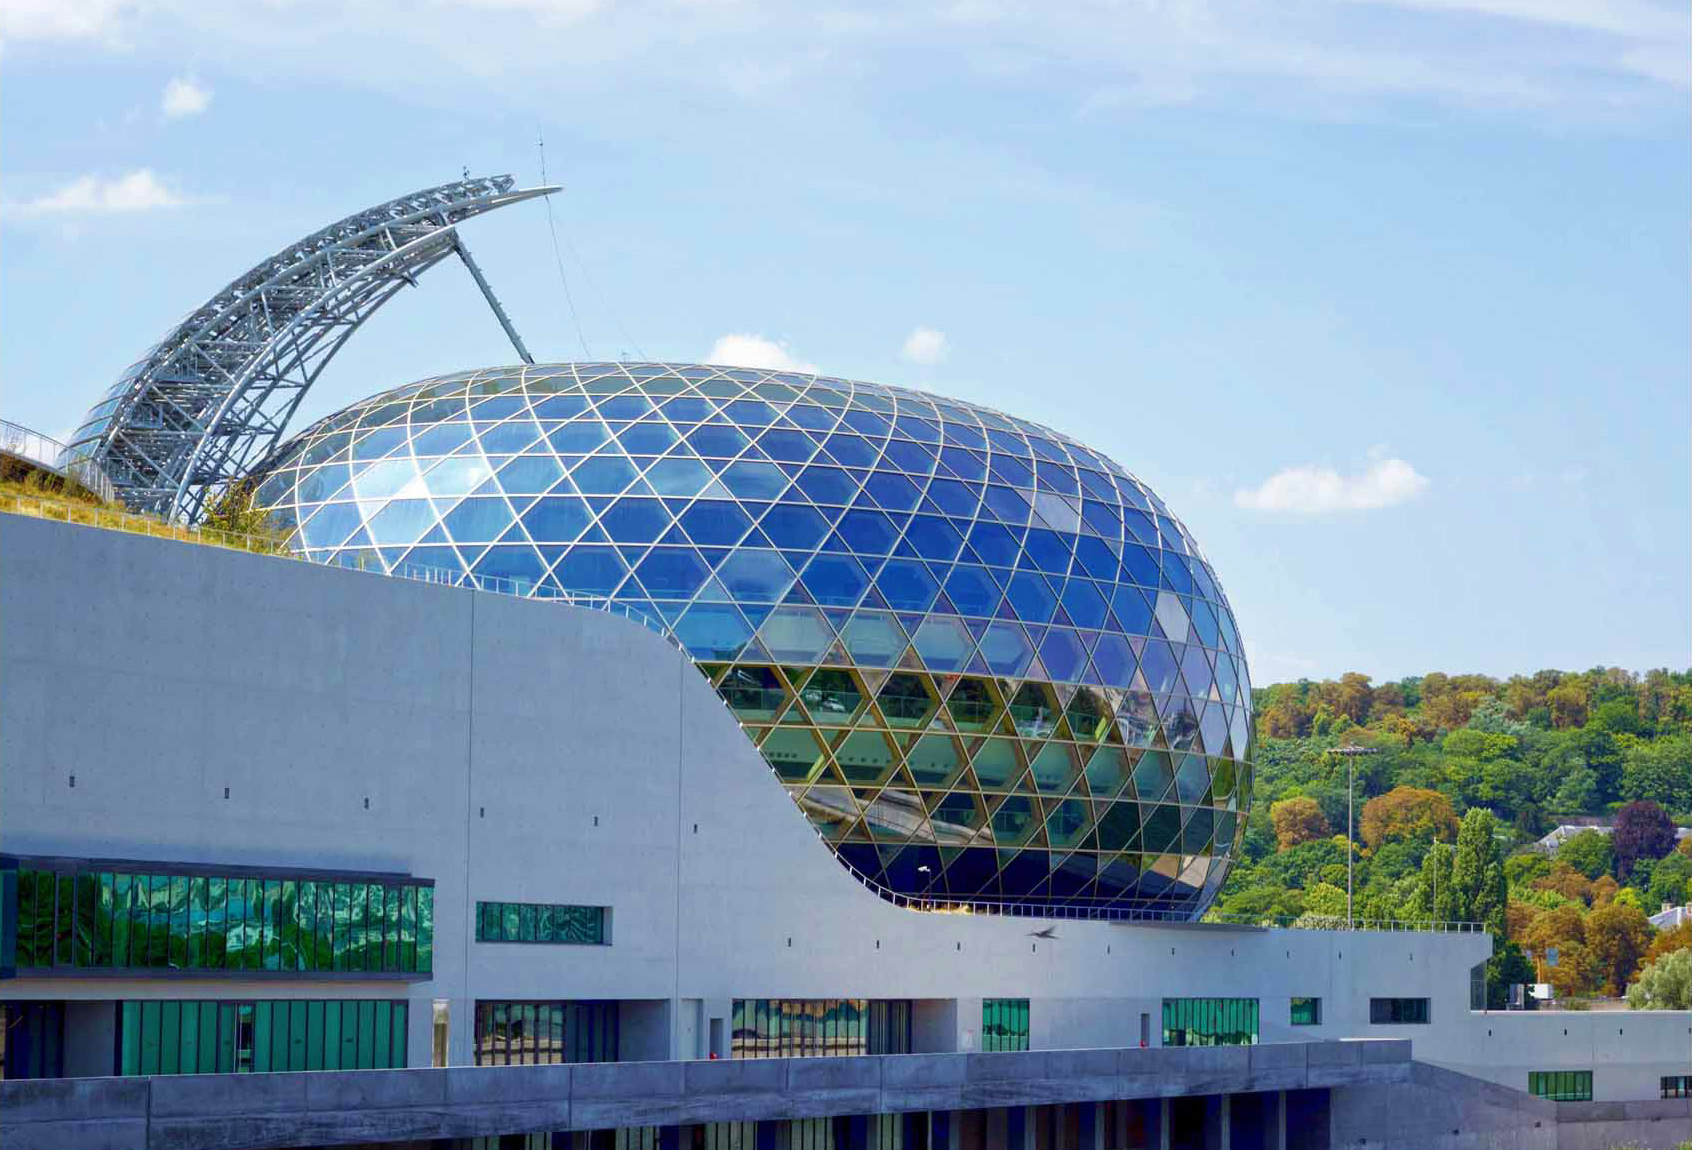 The Dome of La Seine Musicale